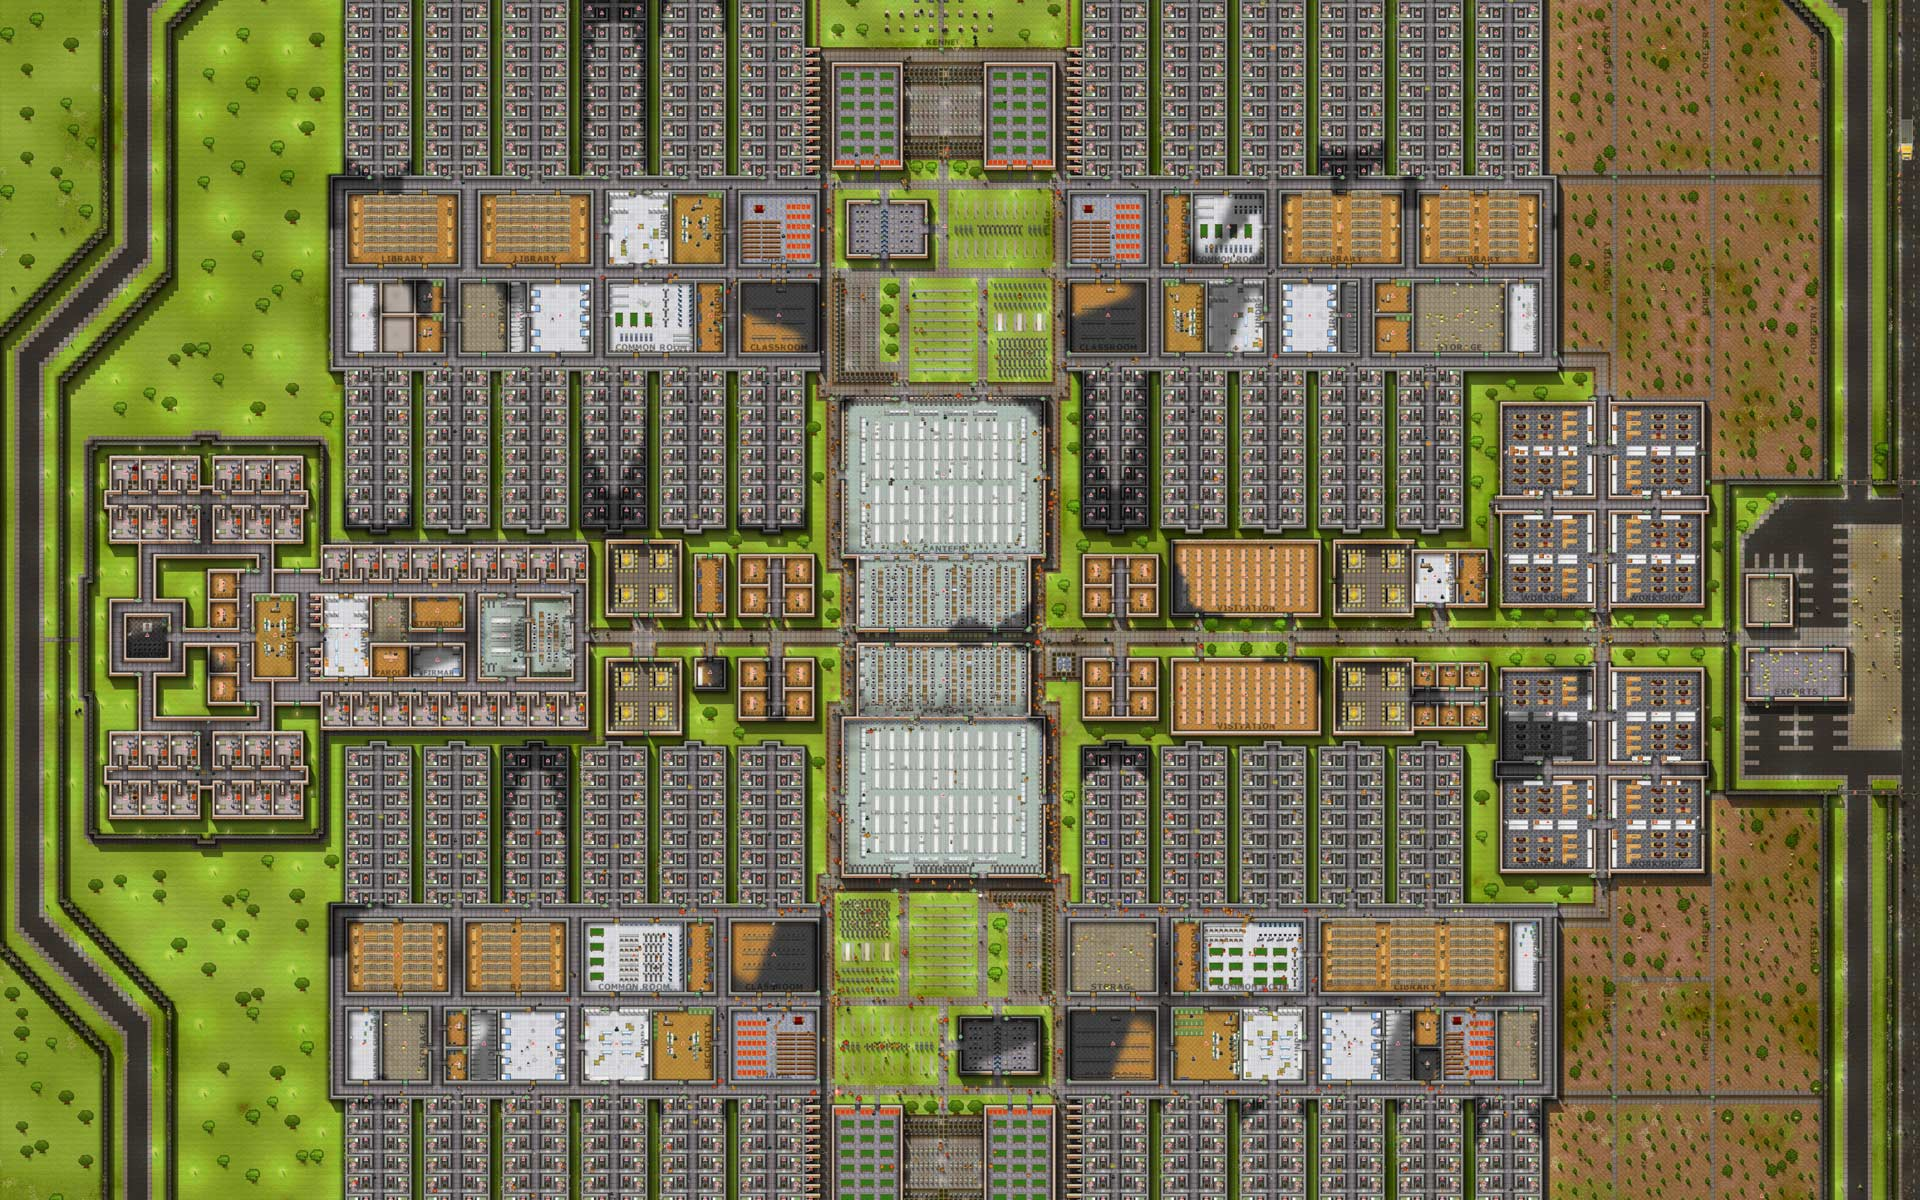 Prison Architect prison overview